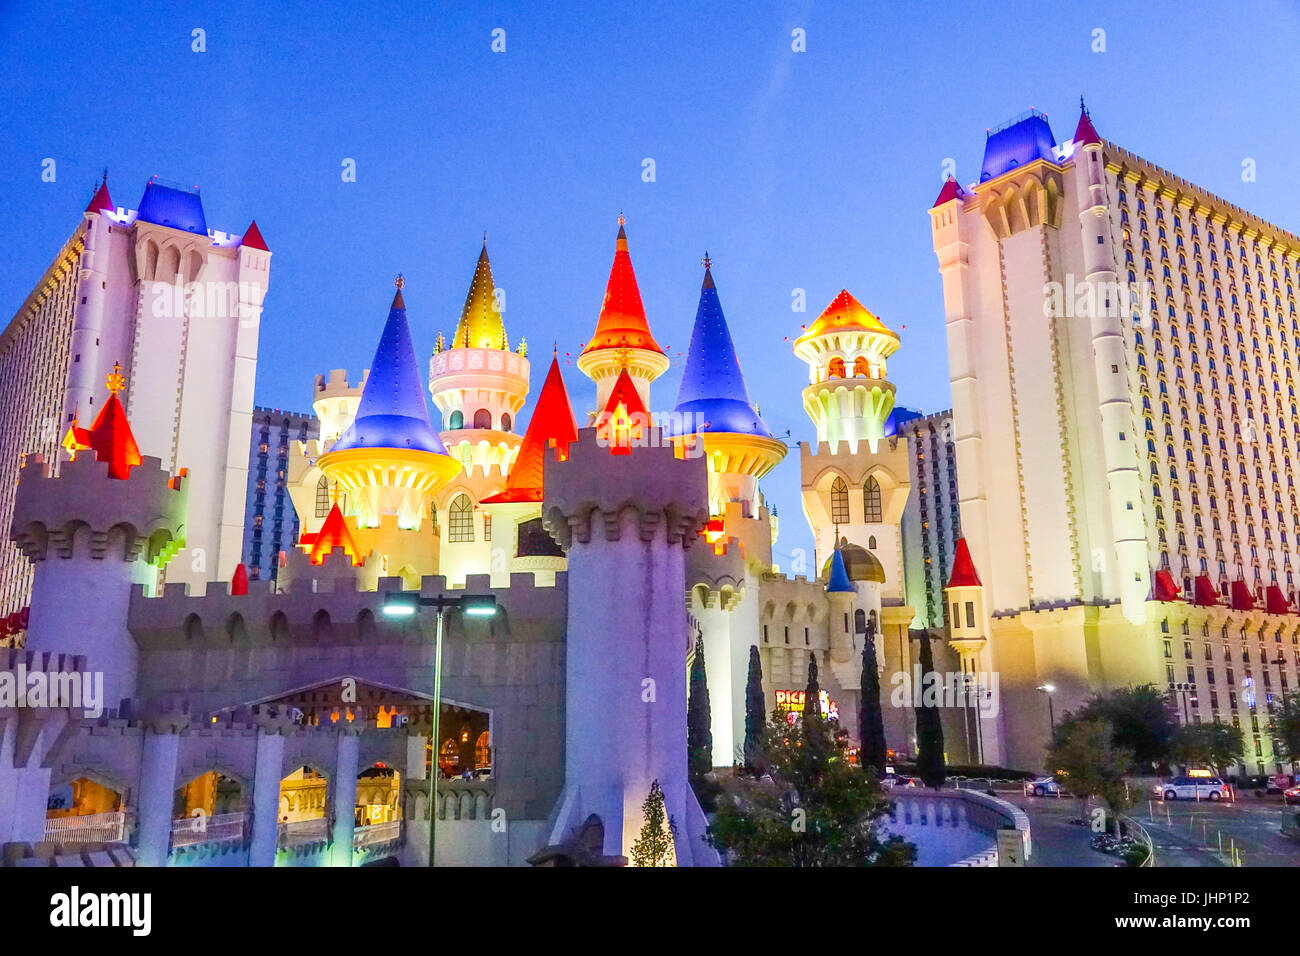 Beautiful Excalibur Hotel and Casino in Las Vegas - LAS VEGAS / NEVADA - APRIL 25, 2017 - Stock Image